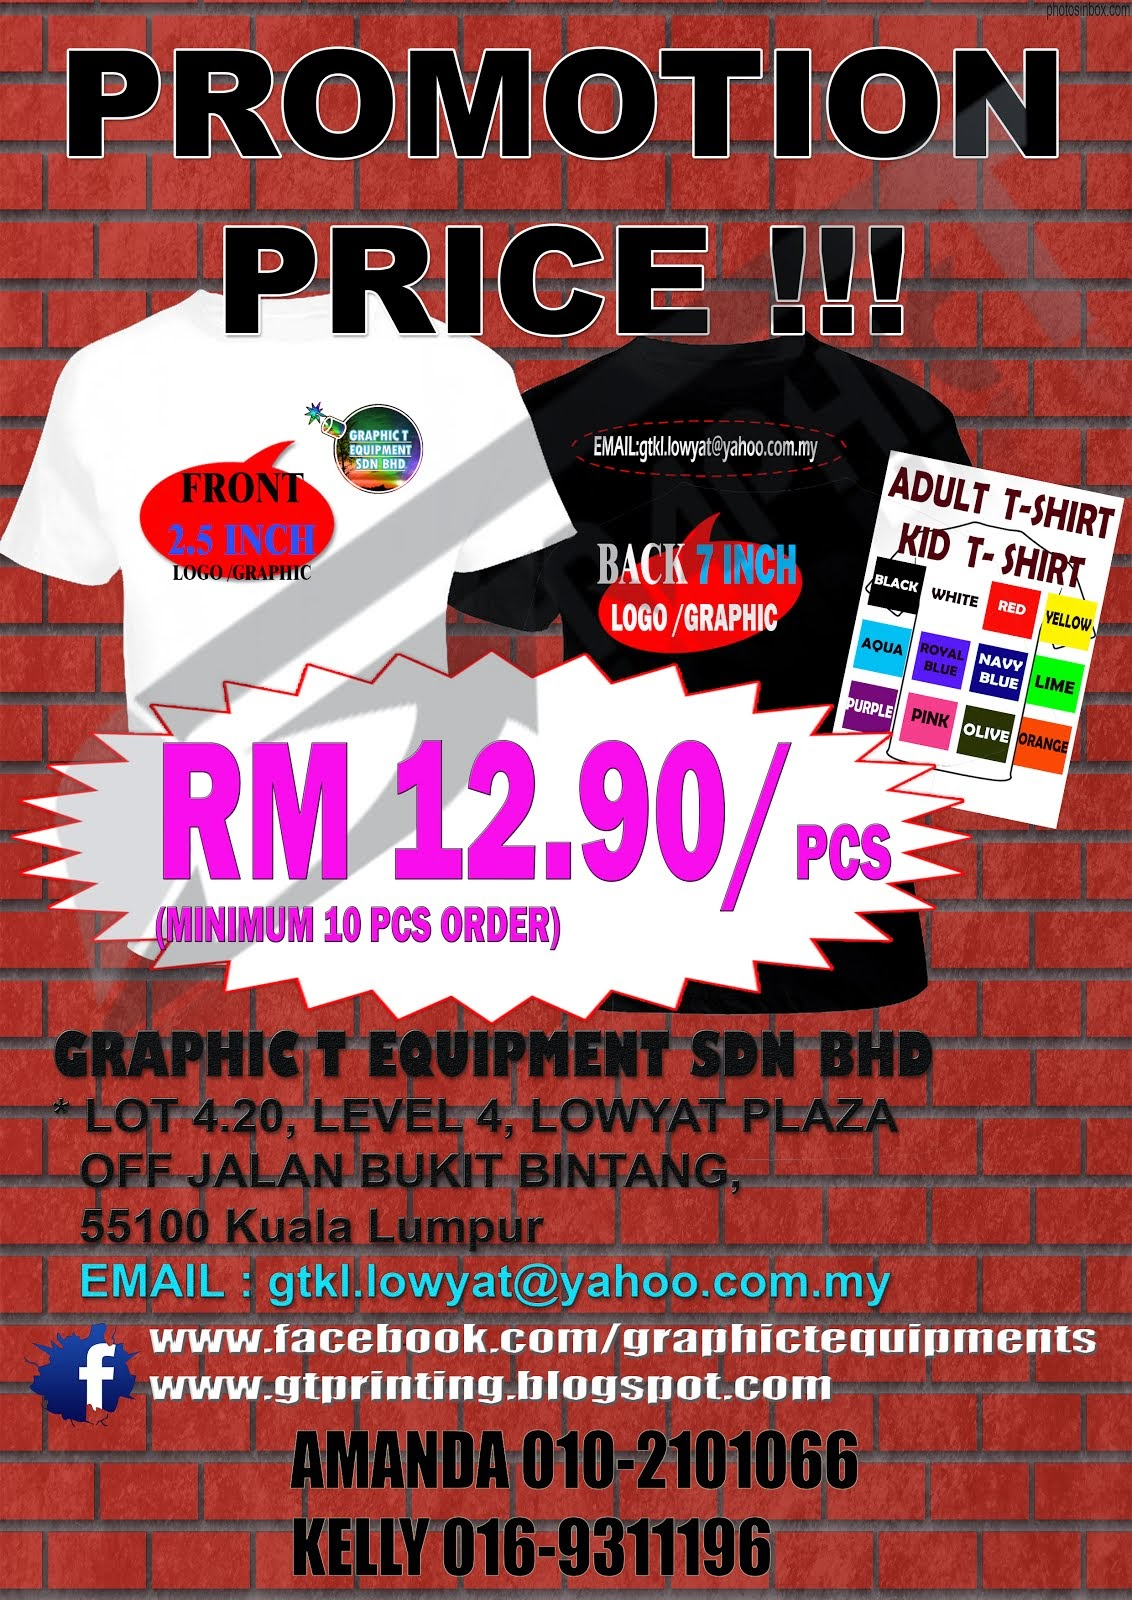 Color printing lowyat - Promotion Price